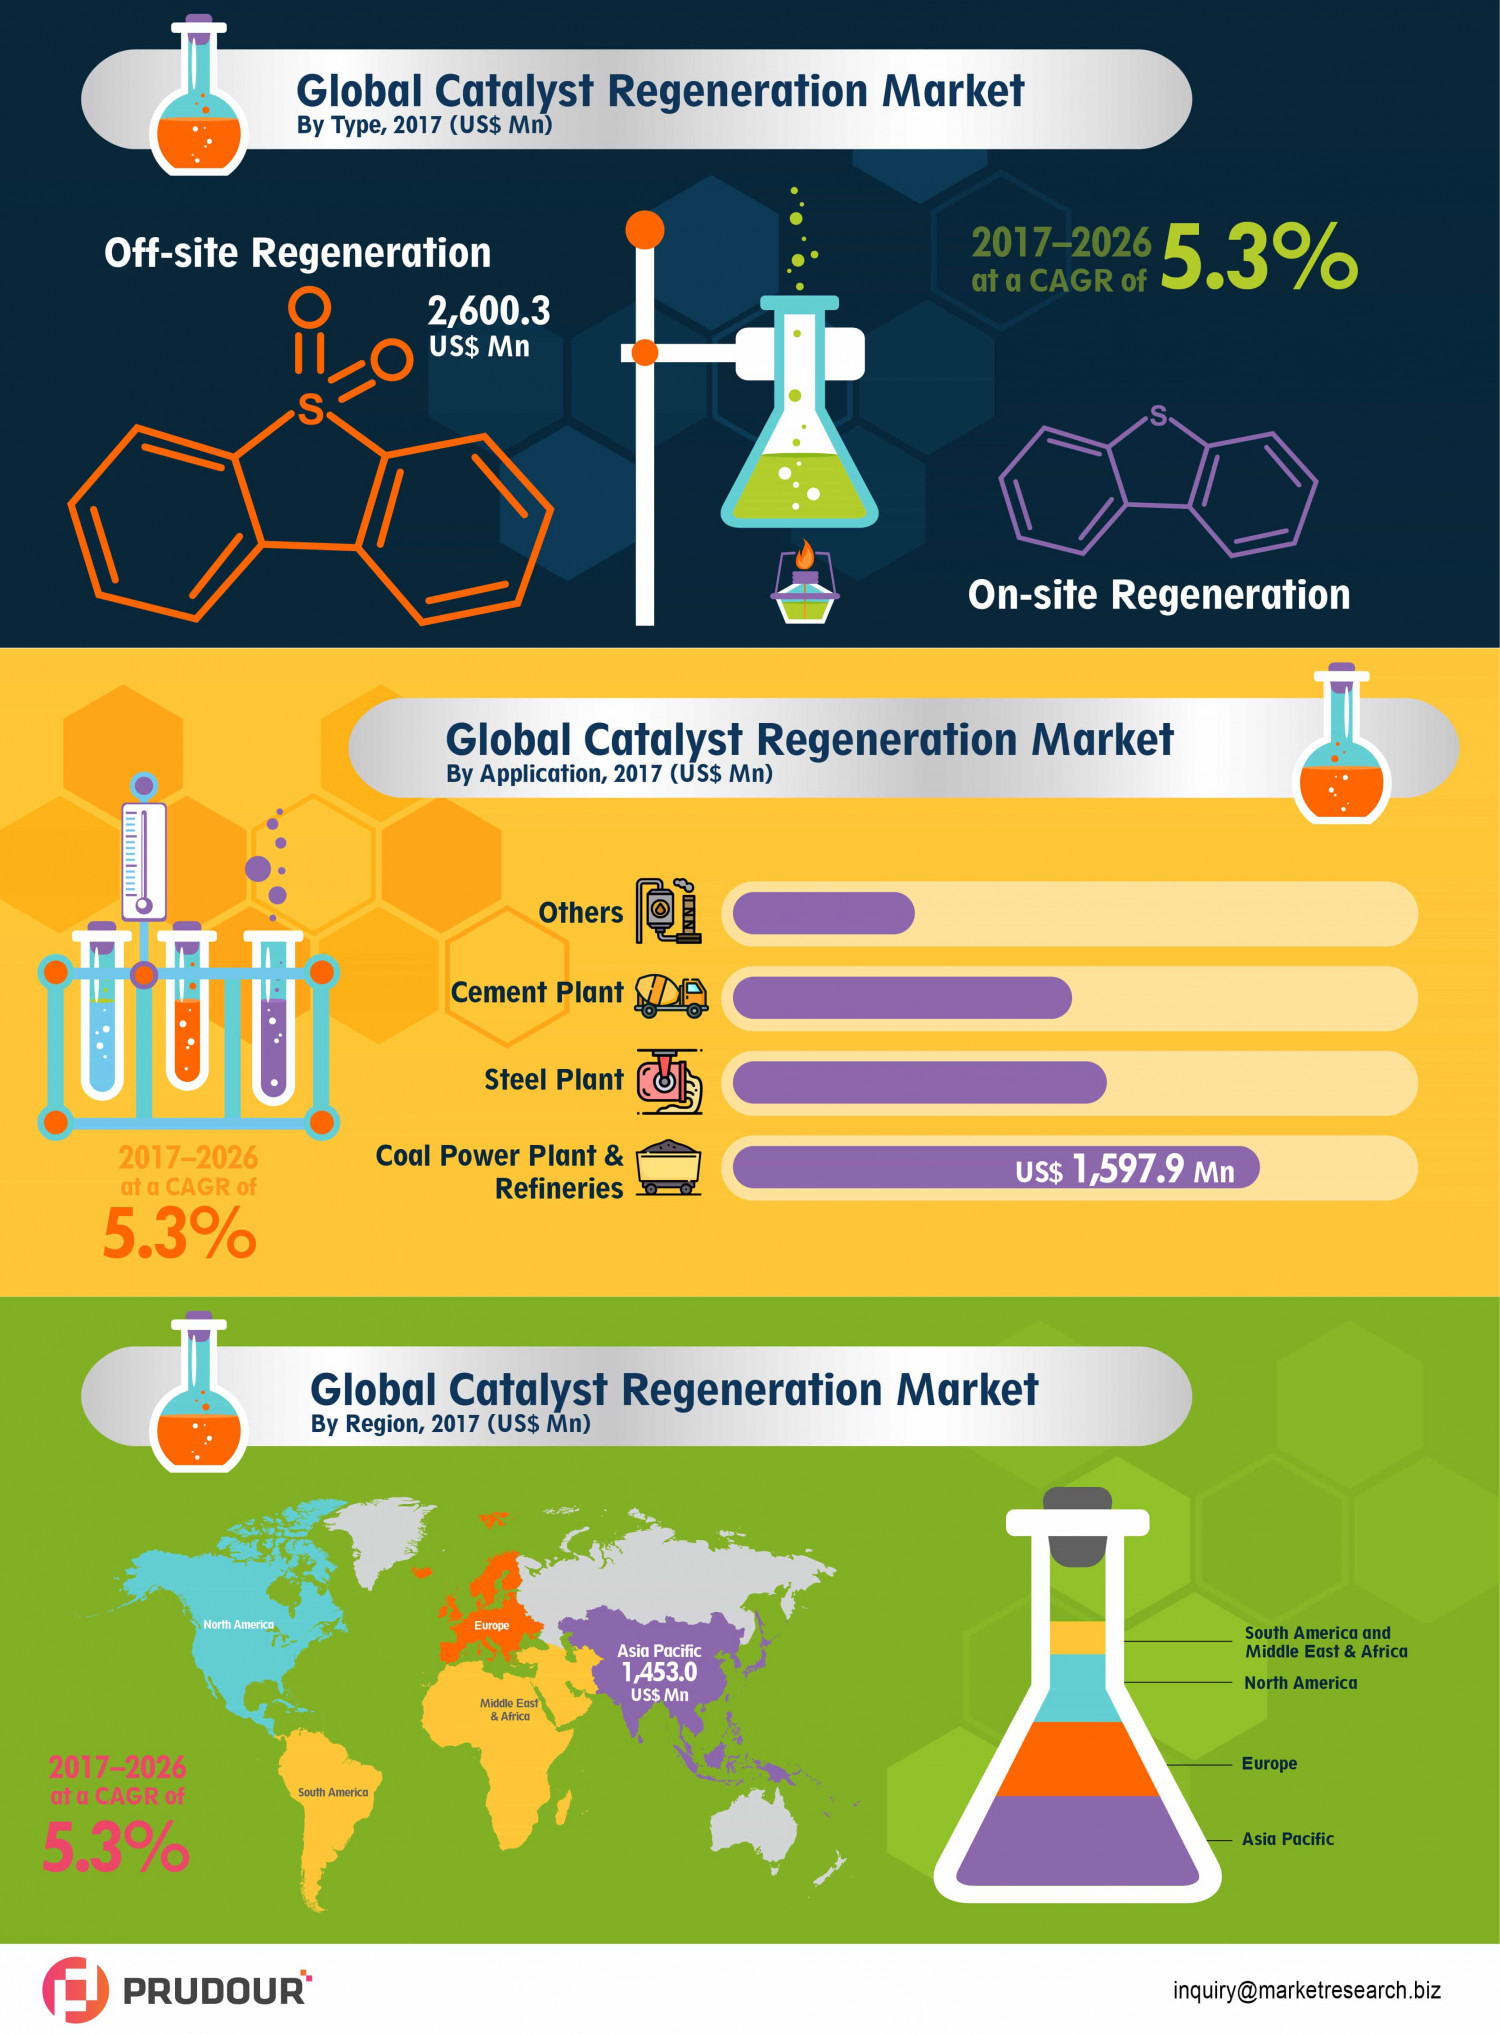 Worldwide Catalyst Regeneration Market About To Hit CAGR of 5.3% From 2017 to 2026 Infographic